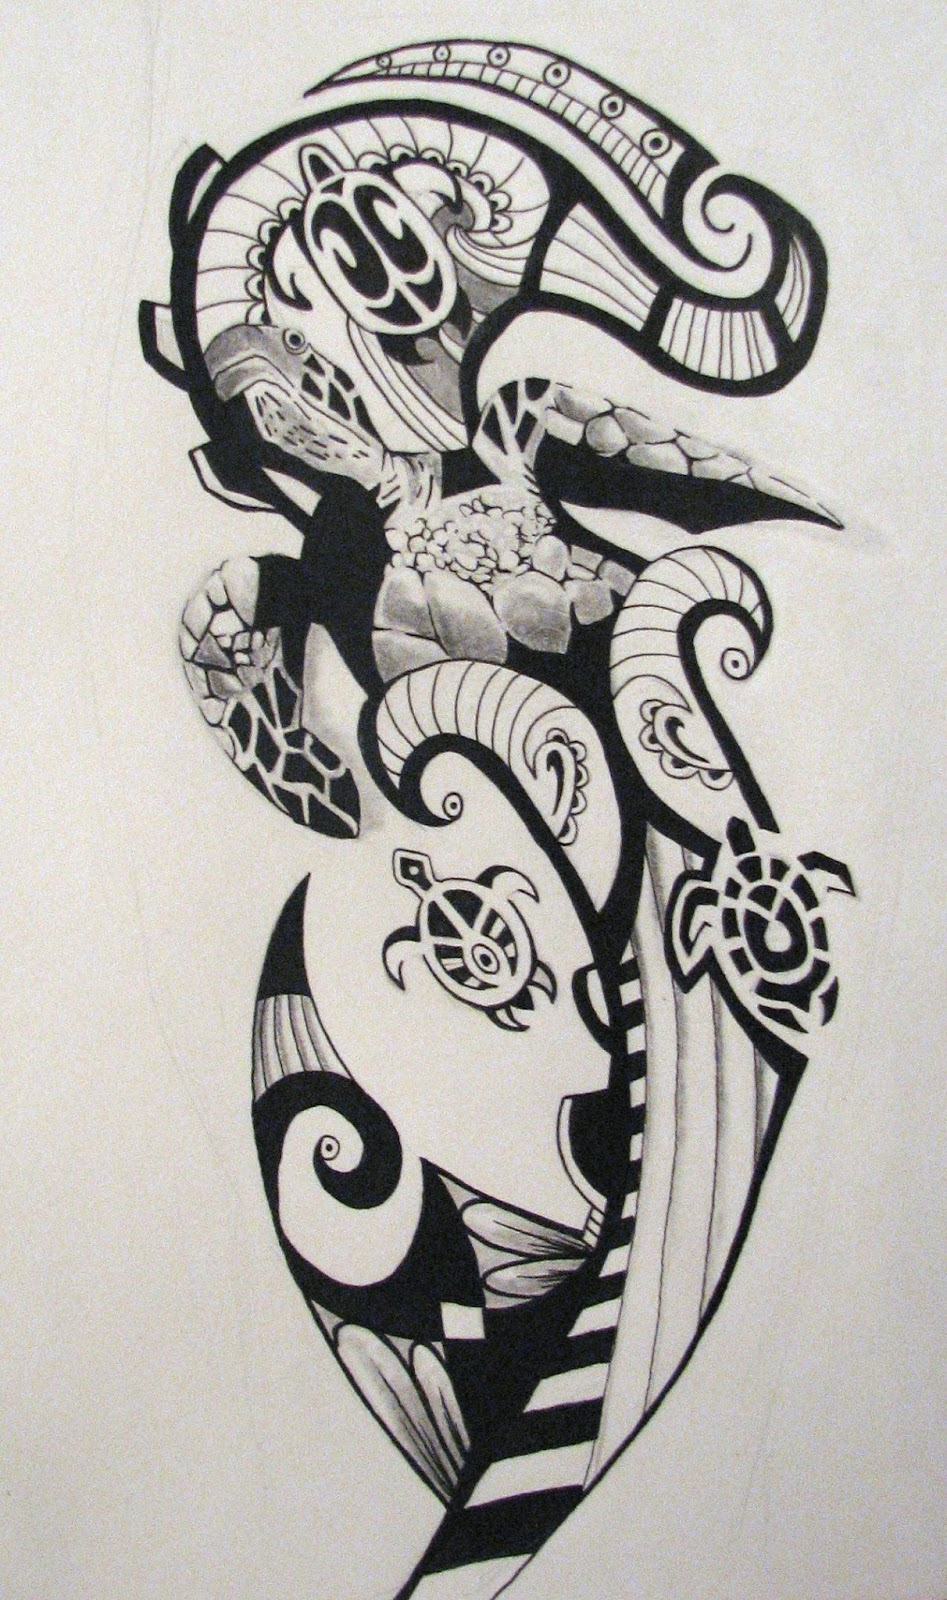 Tattooz designs maori tribal tattoos designs pictures gallery to copy an existing maori tattoo design is an insult to the maori tribesman you have copied it from so get a tattoo that is unique buycottarizona